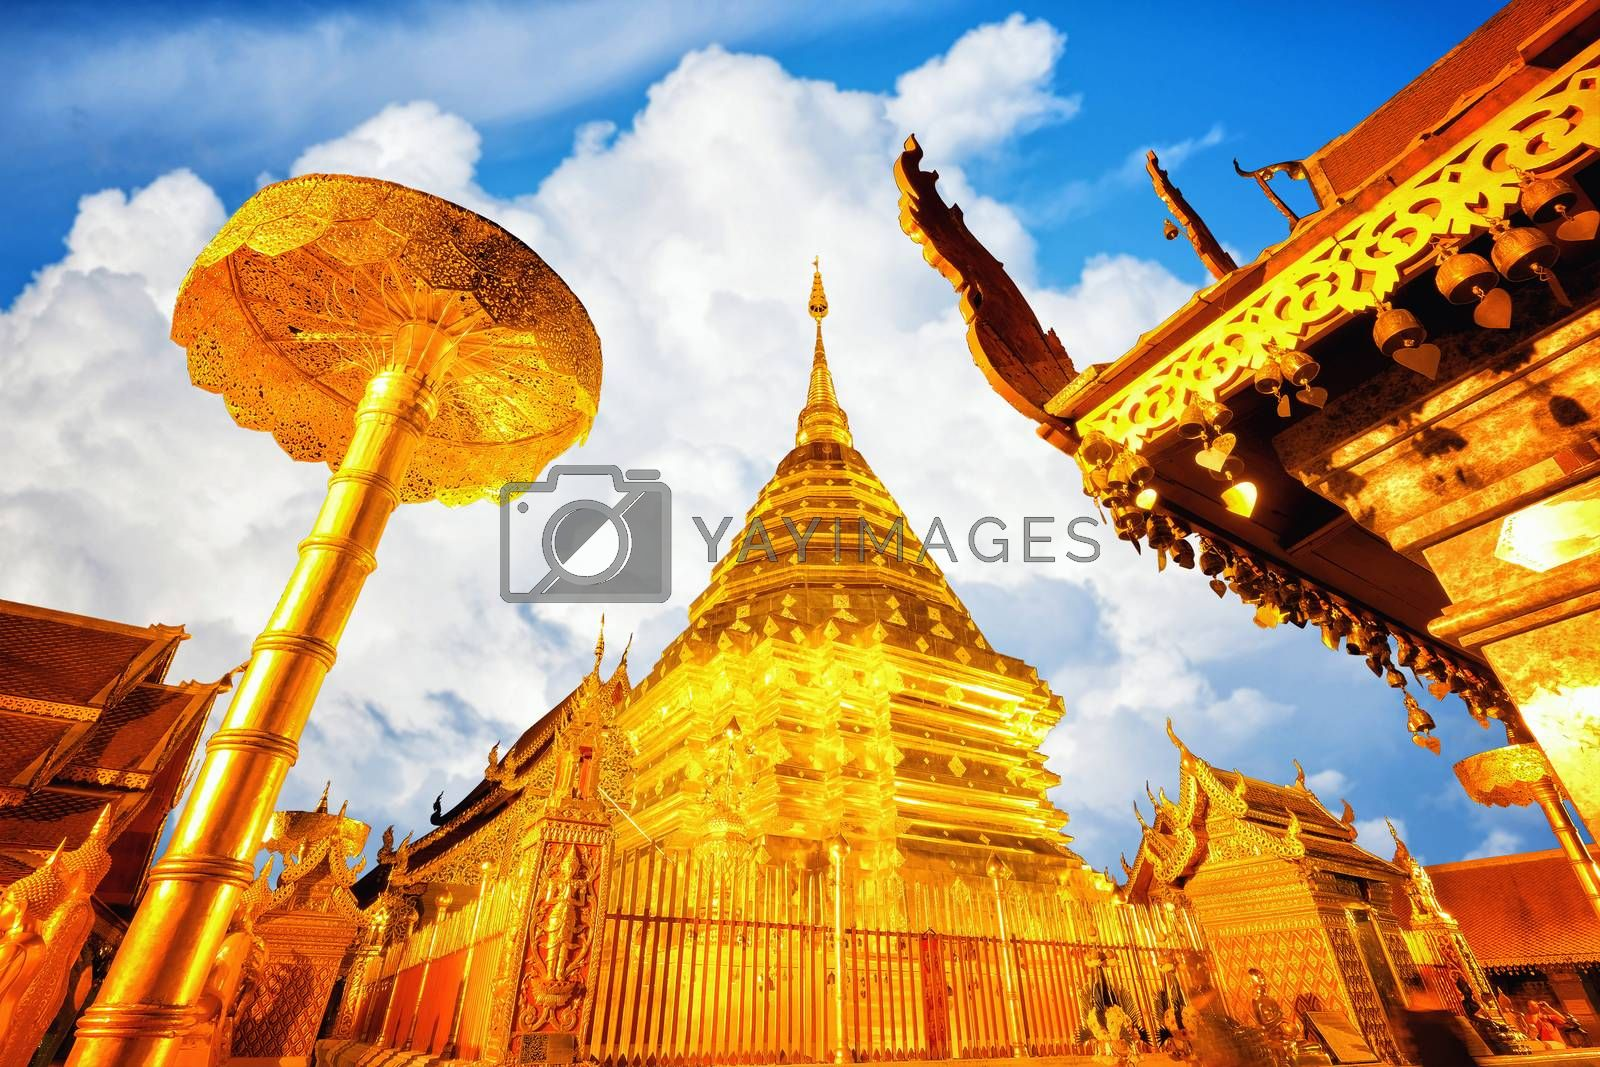 View of Wat Phra That Doi Suthep in daylight, Chiang Mai, Popula by Surasak